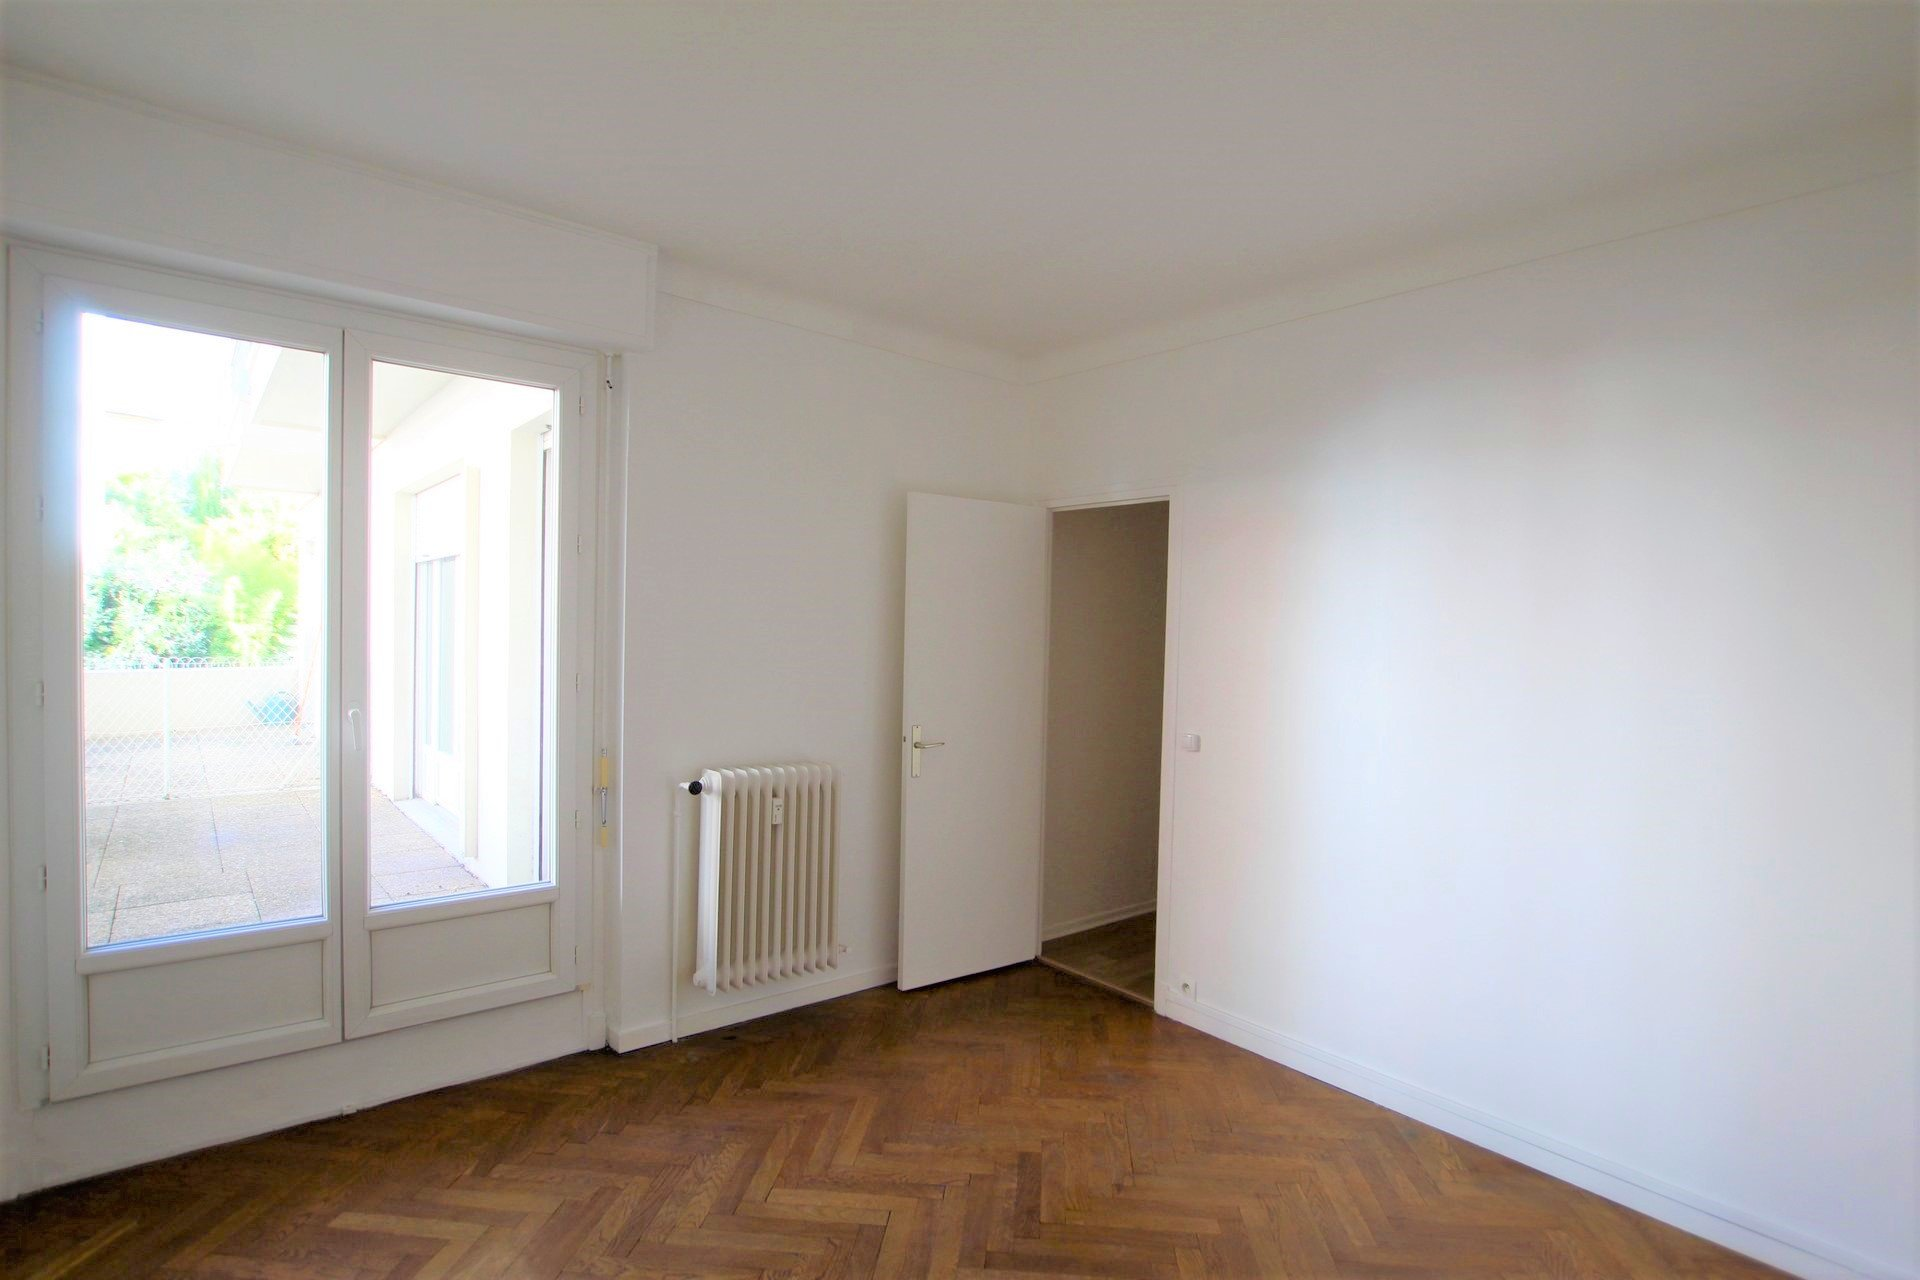 1-bed apartment to rent - Place Fontaine du Temple